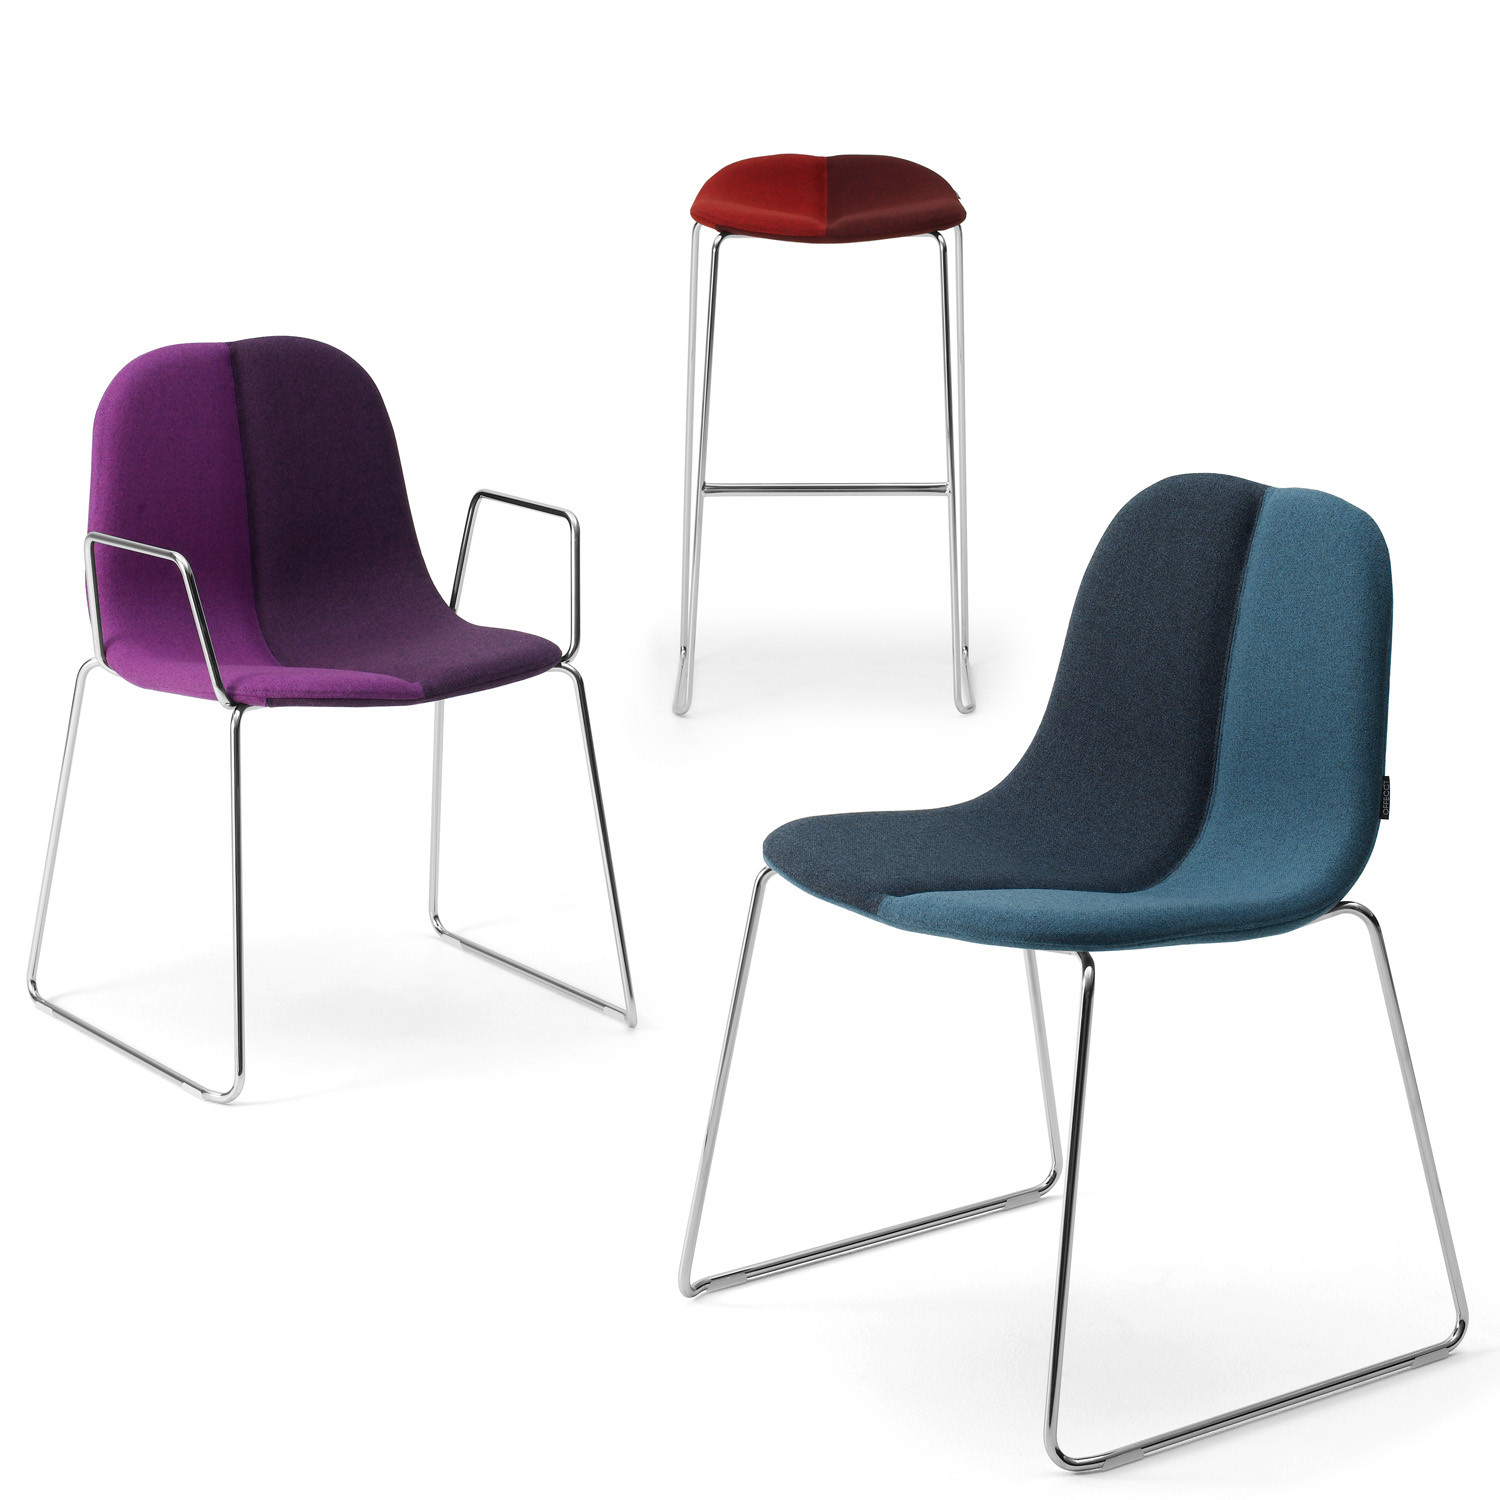 Duo Stools and Chairs by Offecct